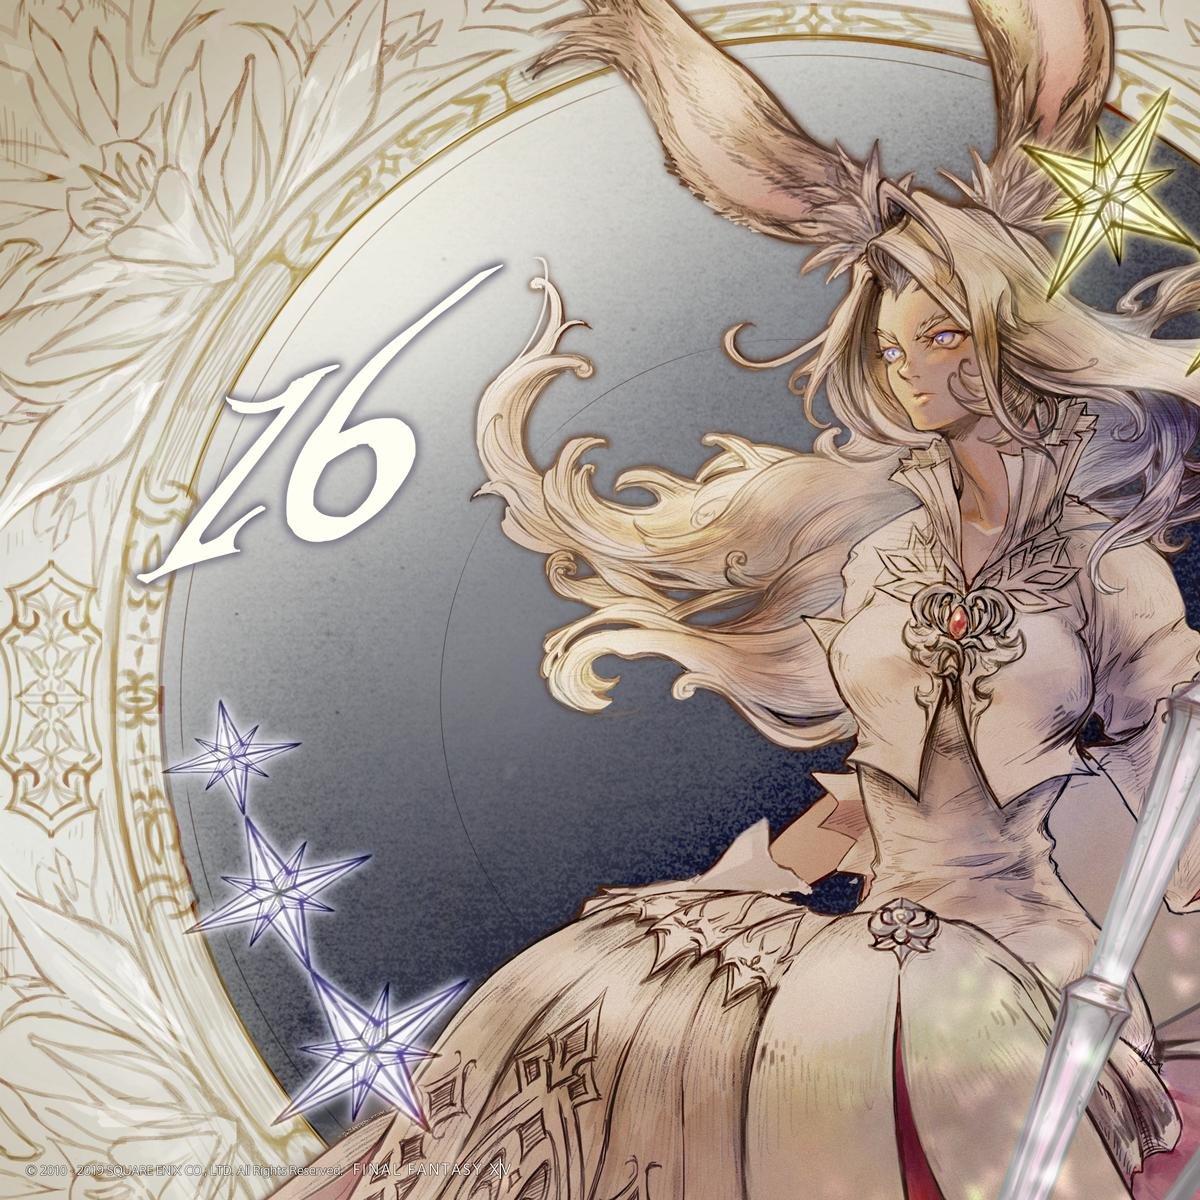 16 days to go until the launch of #FFXIV Shadowbringers!